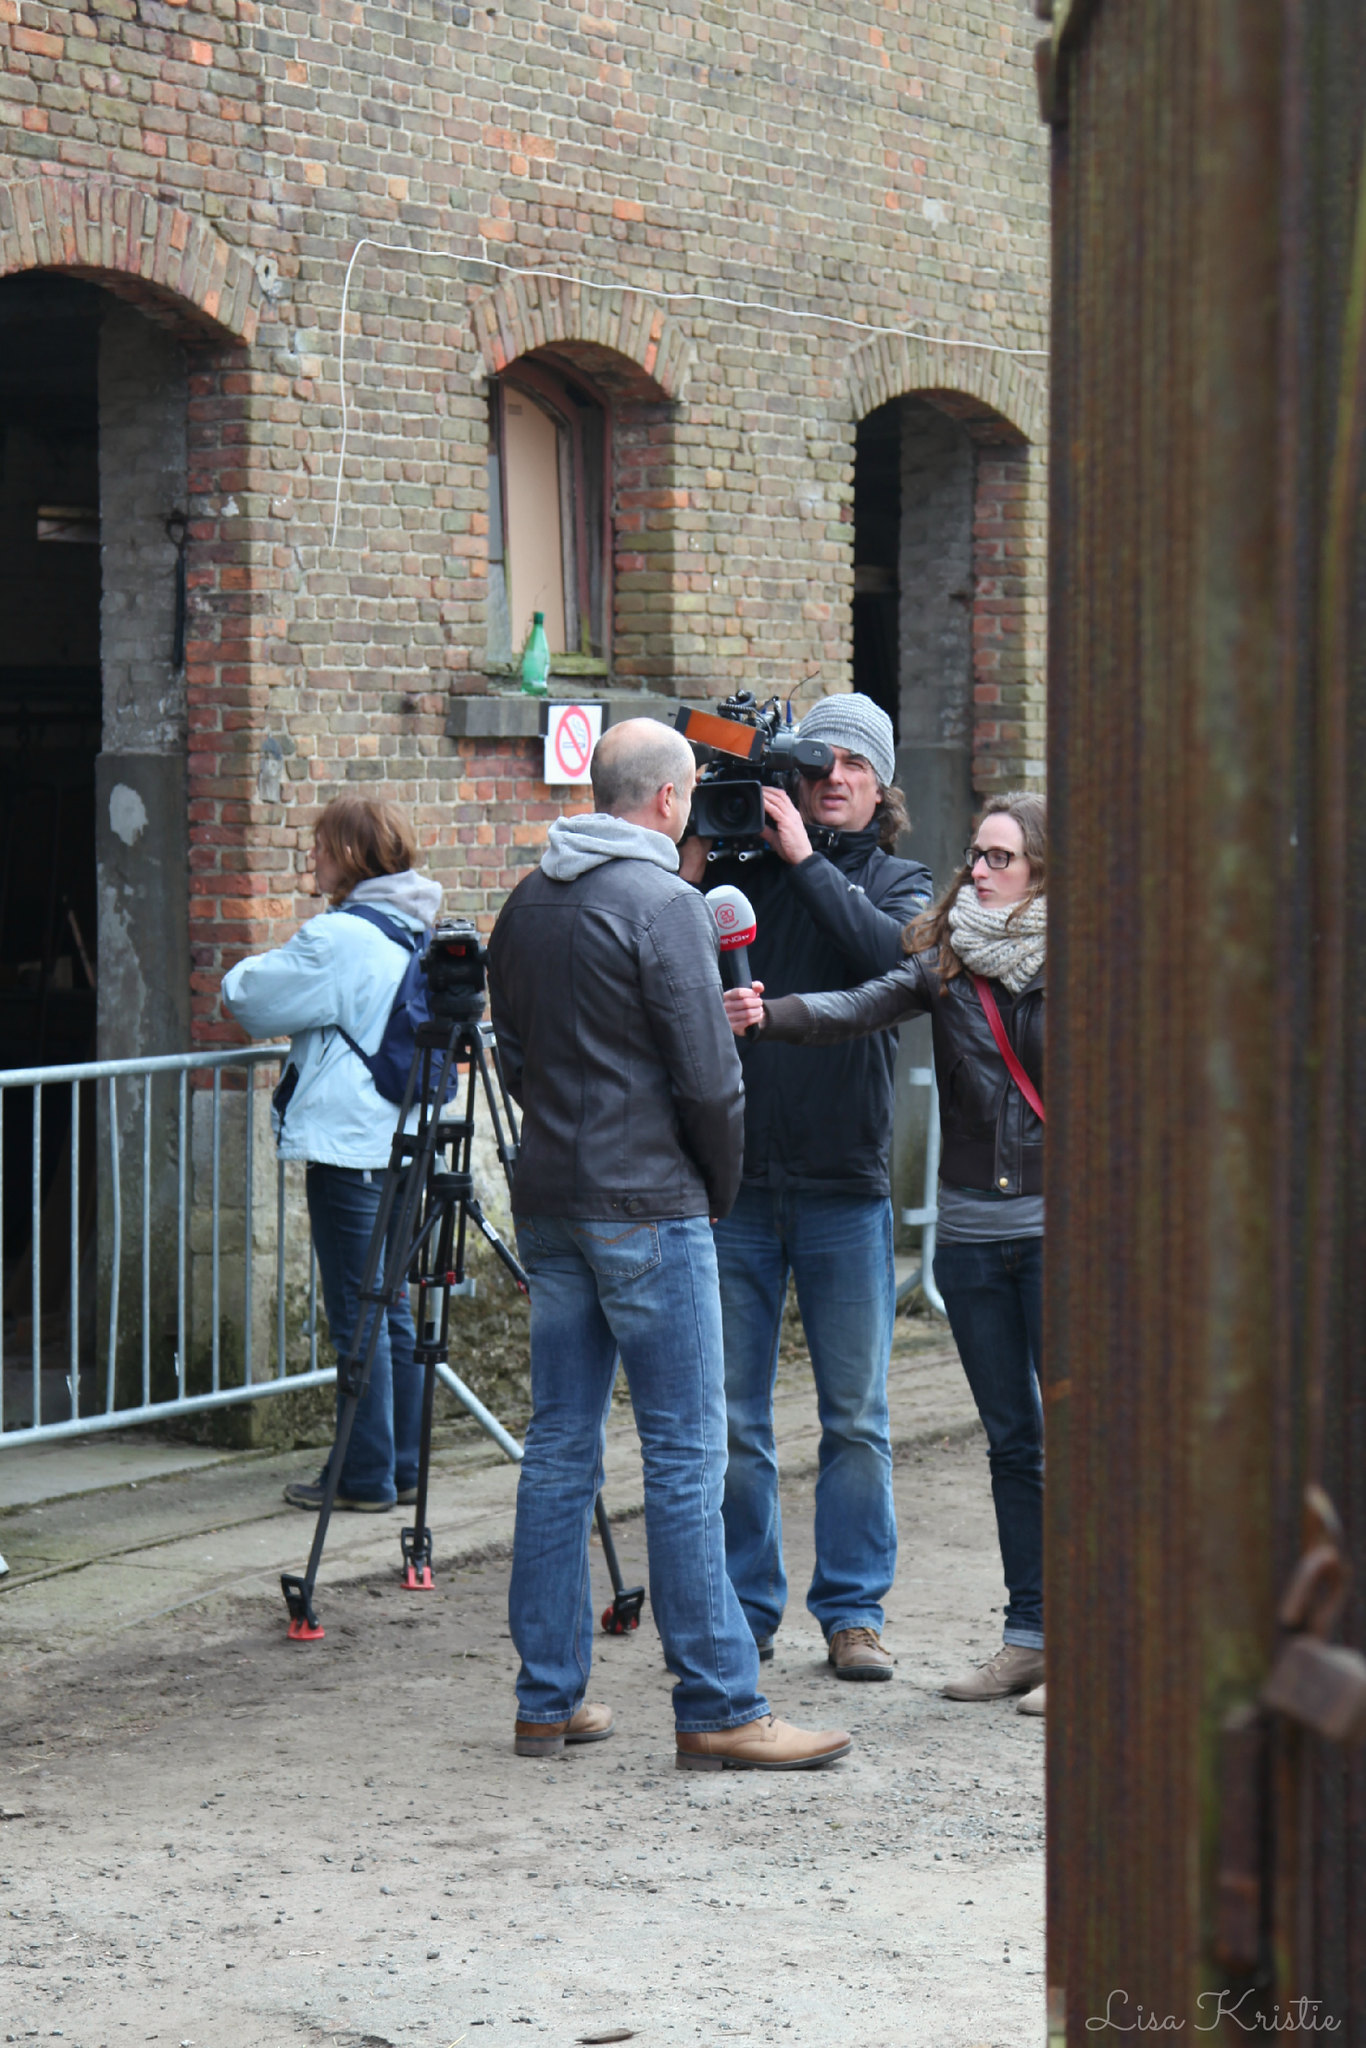 old europe castle estate european belgium belgian property visit private farm tv crew interview